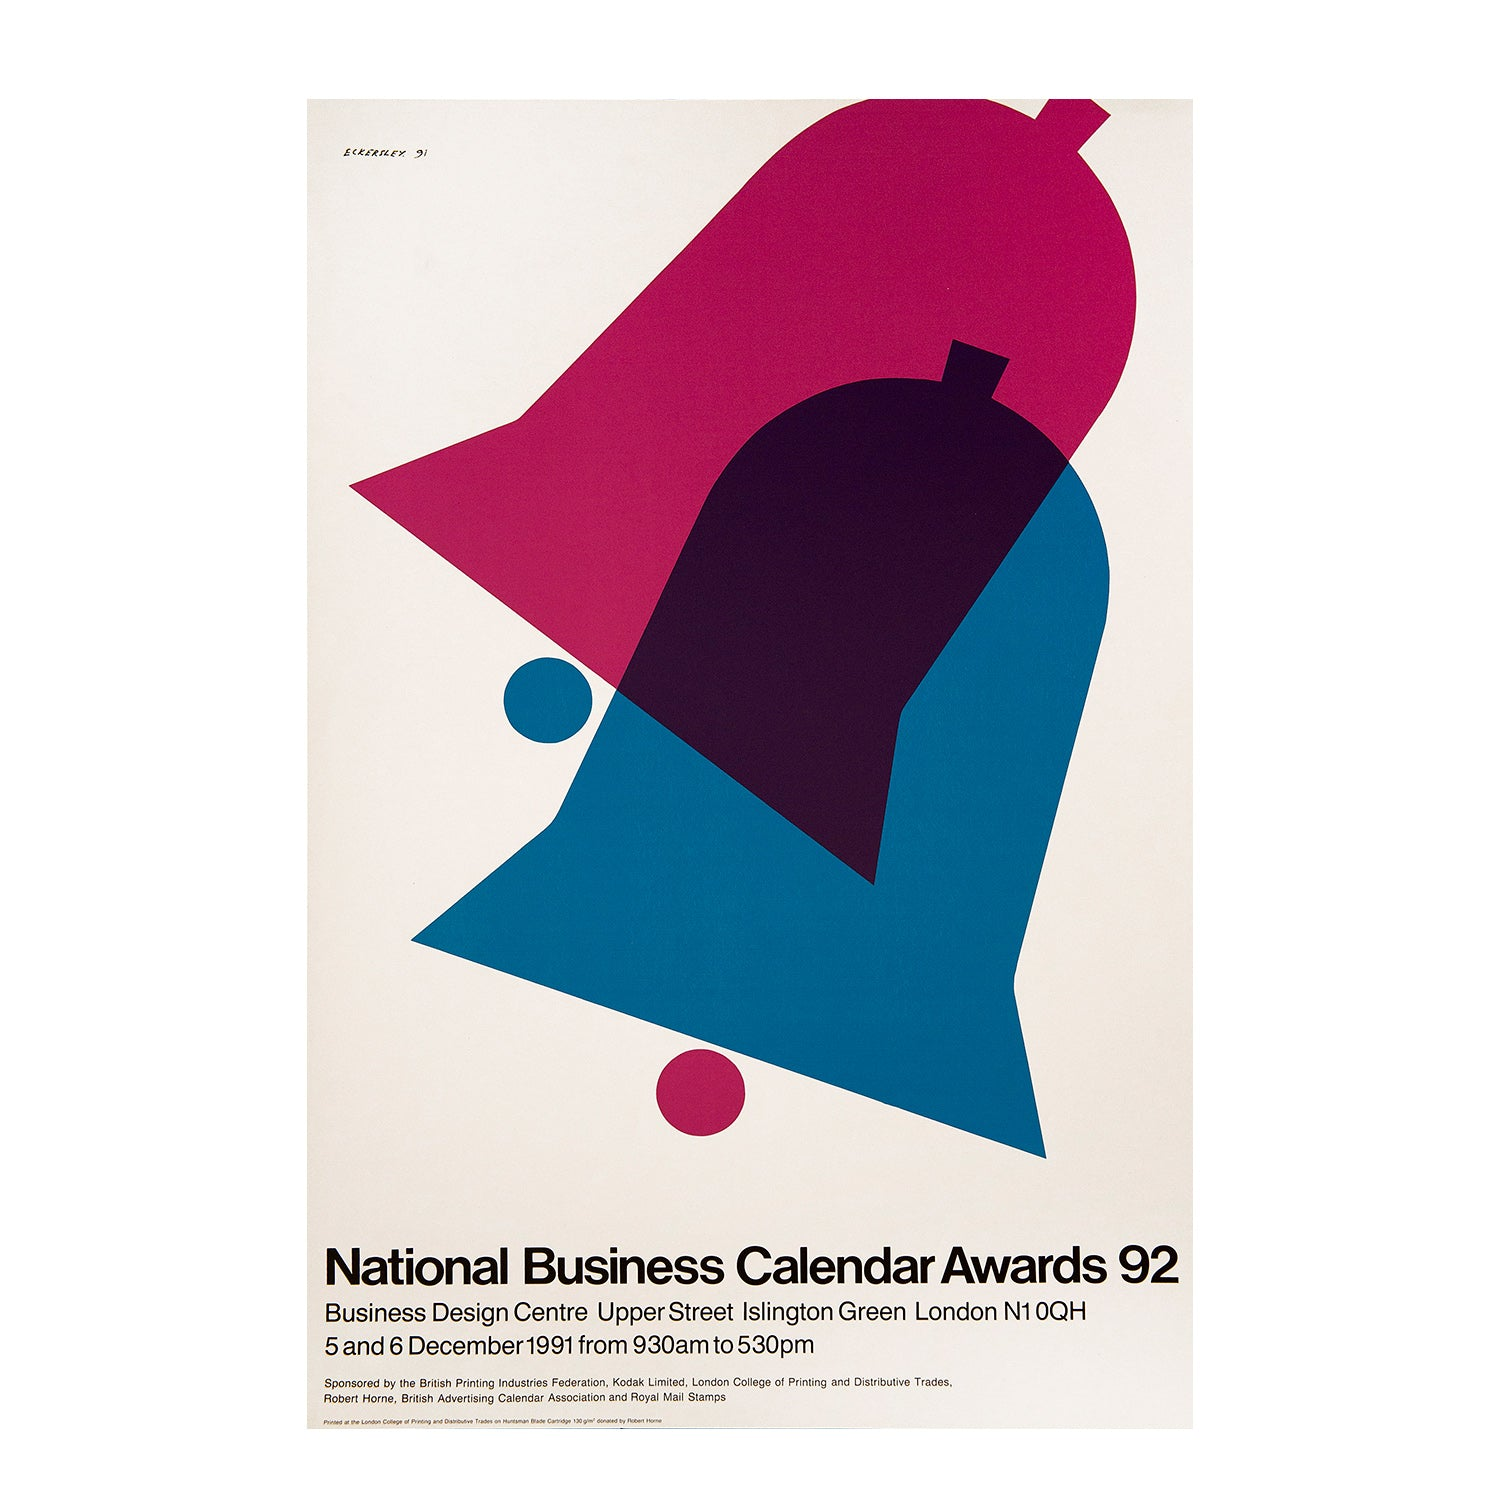 National Business Calendar Awards 92